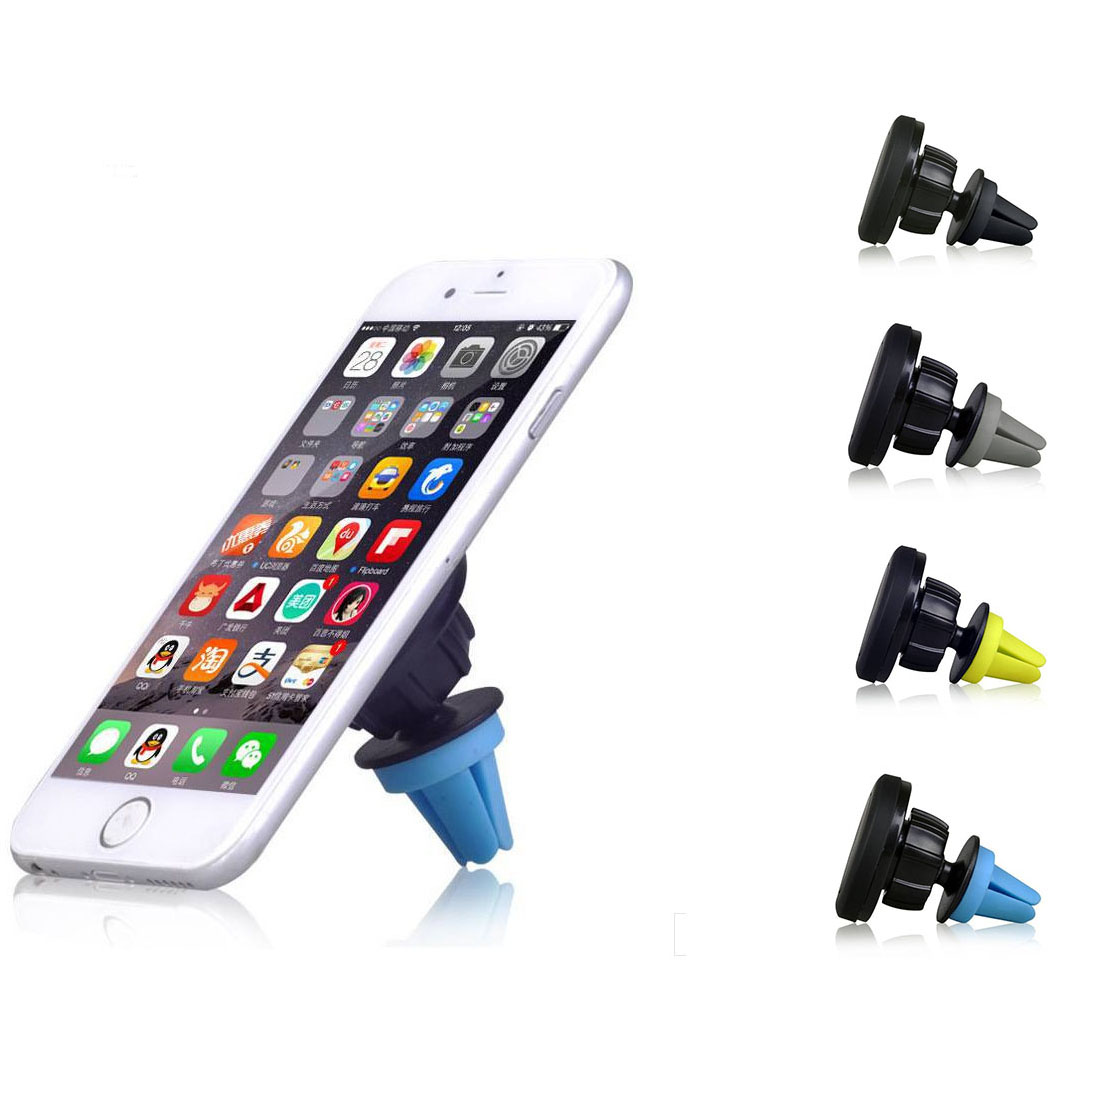 360 Degrees Universal Car Air Vent Mount Stand Sticky Magnetic Phone Holder iPhone 4 5 6 Samsung S6 s - Shenzhen GTW Technology Co., Ltd store